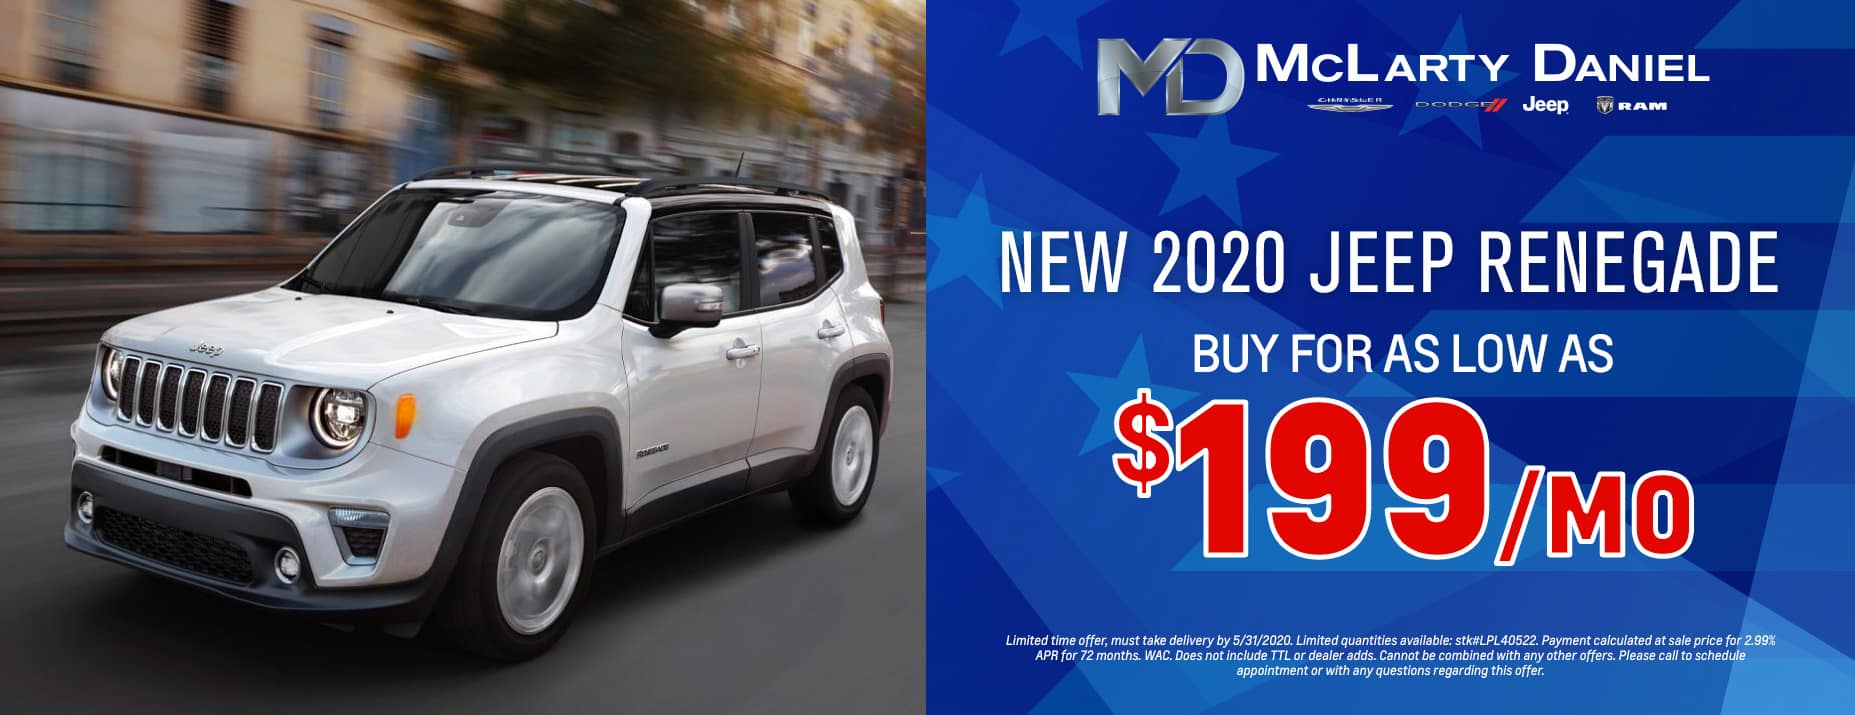 Buy a 2020 Renegade for as low as $199 per month!